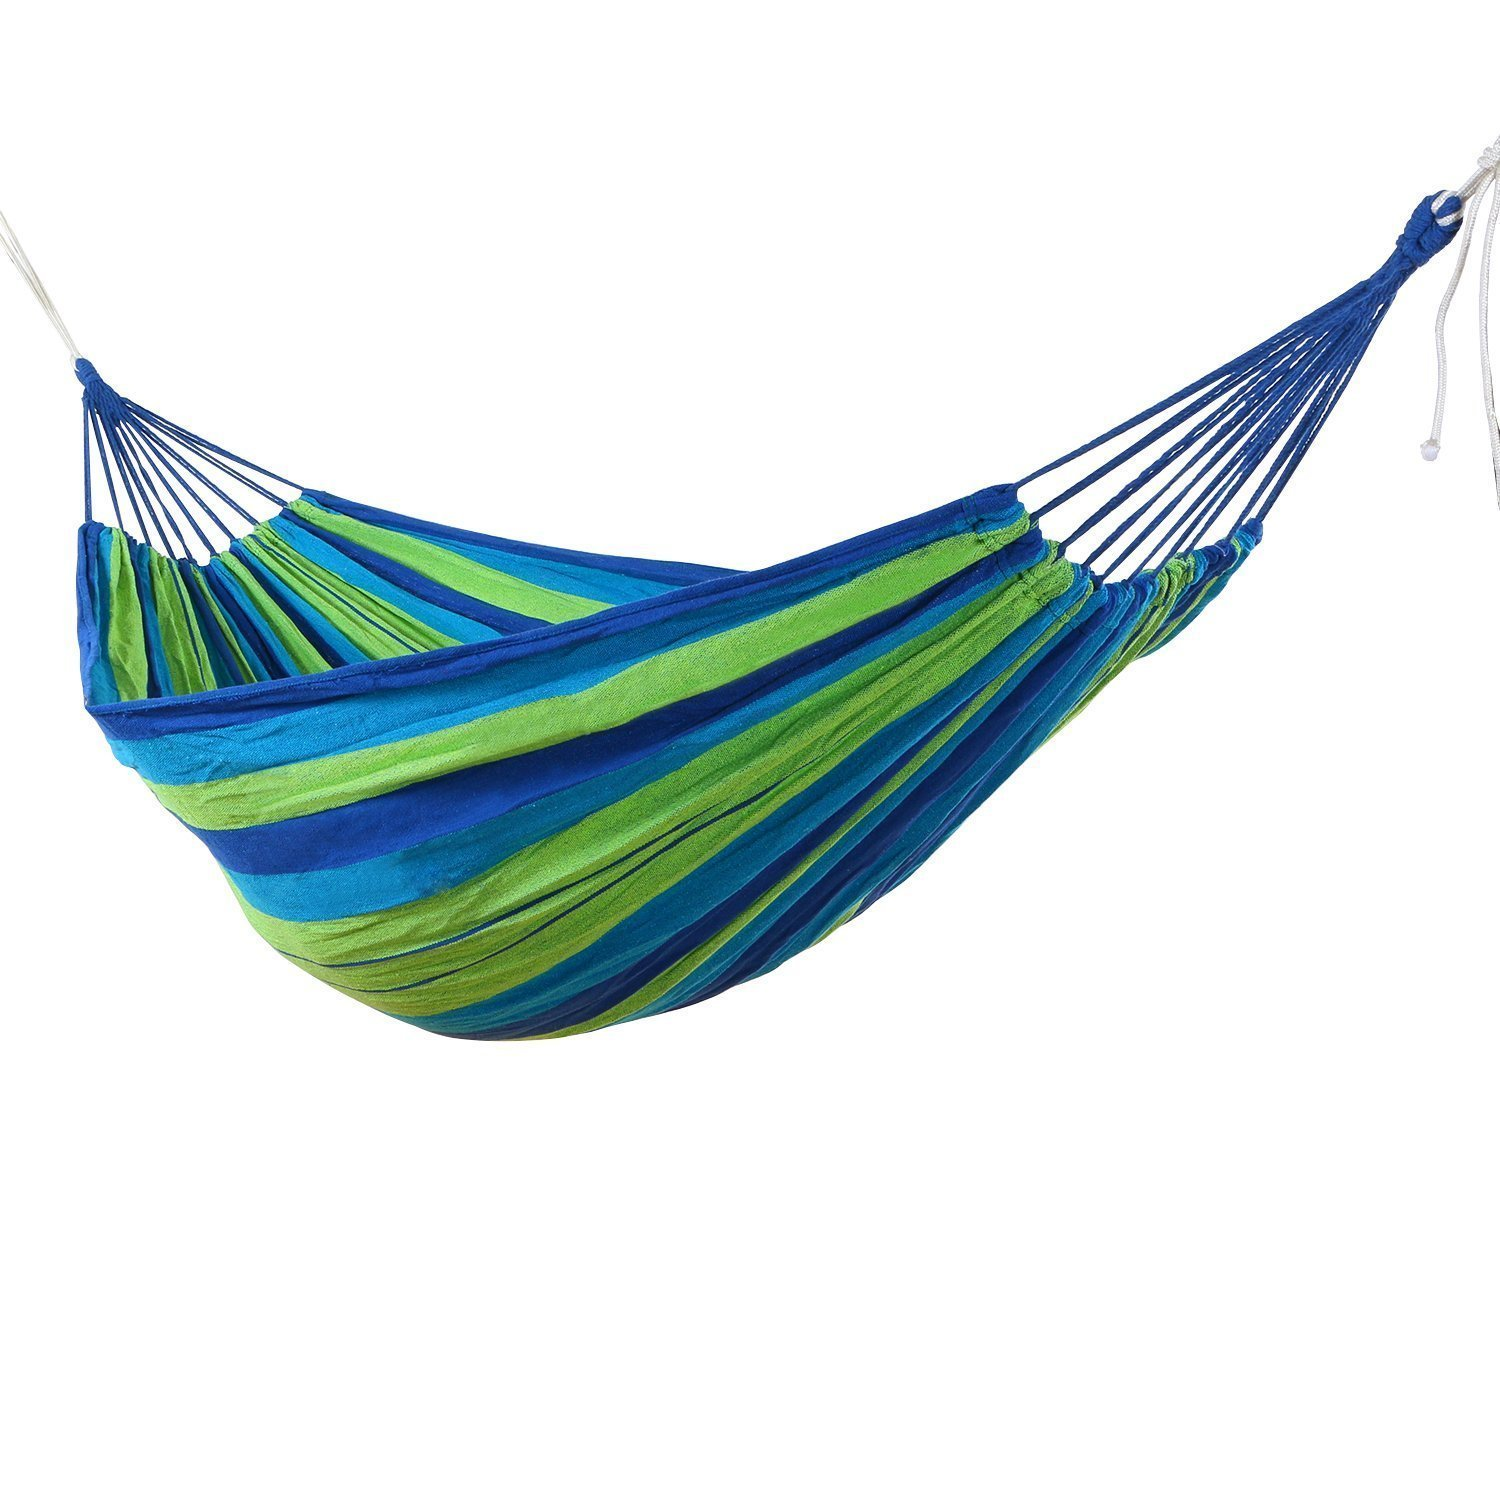 Portable Outdoor Hammock 280x 80cm 120 Kg Load-bearing Garden Sports Home Travel Camping Swing Canvas Stripe Hang Bed Hammock Sleeping Bags